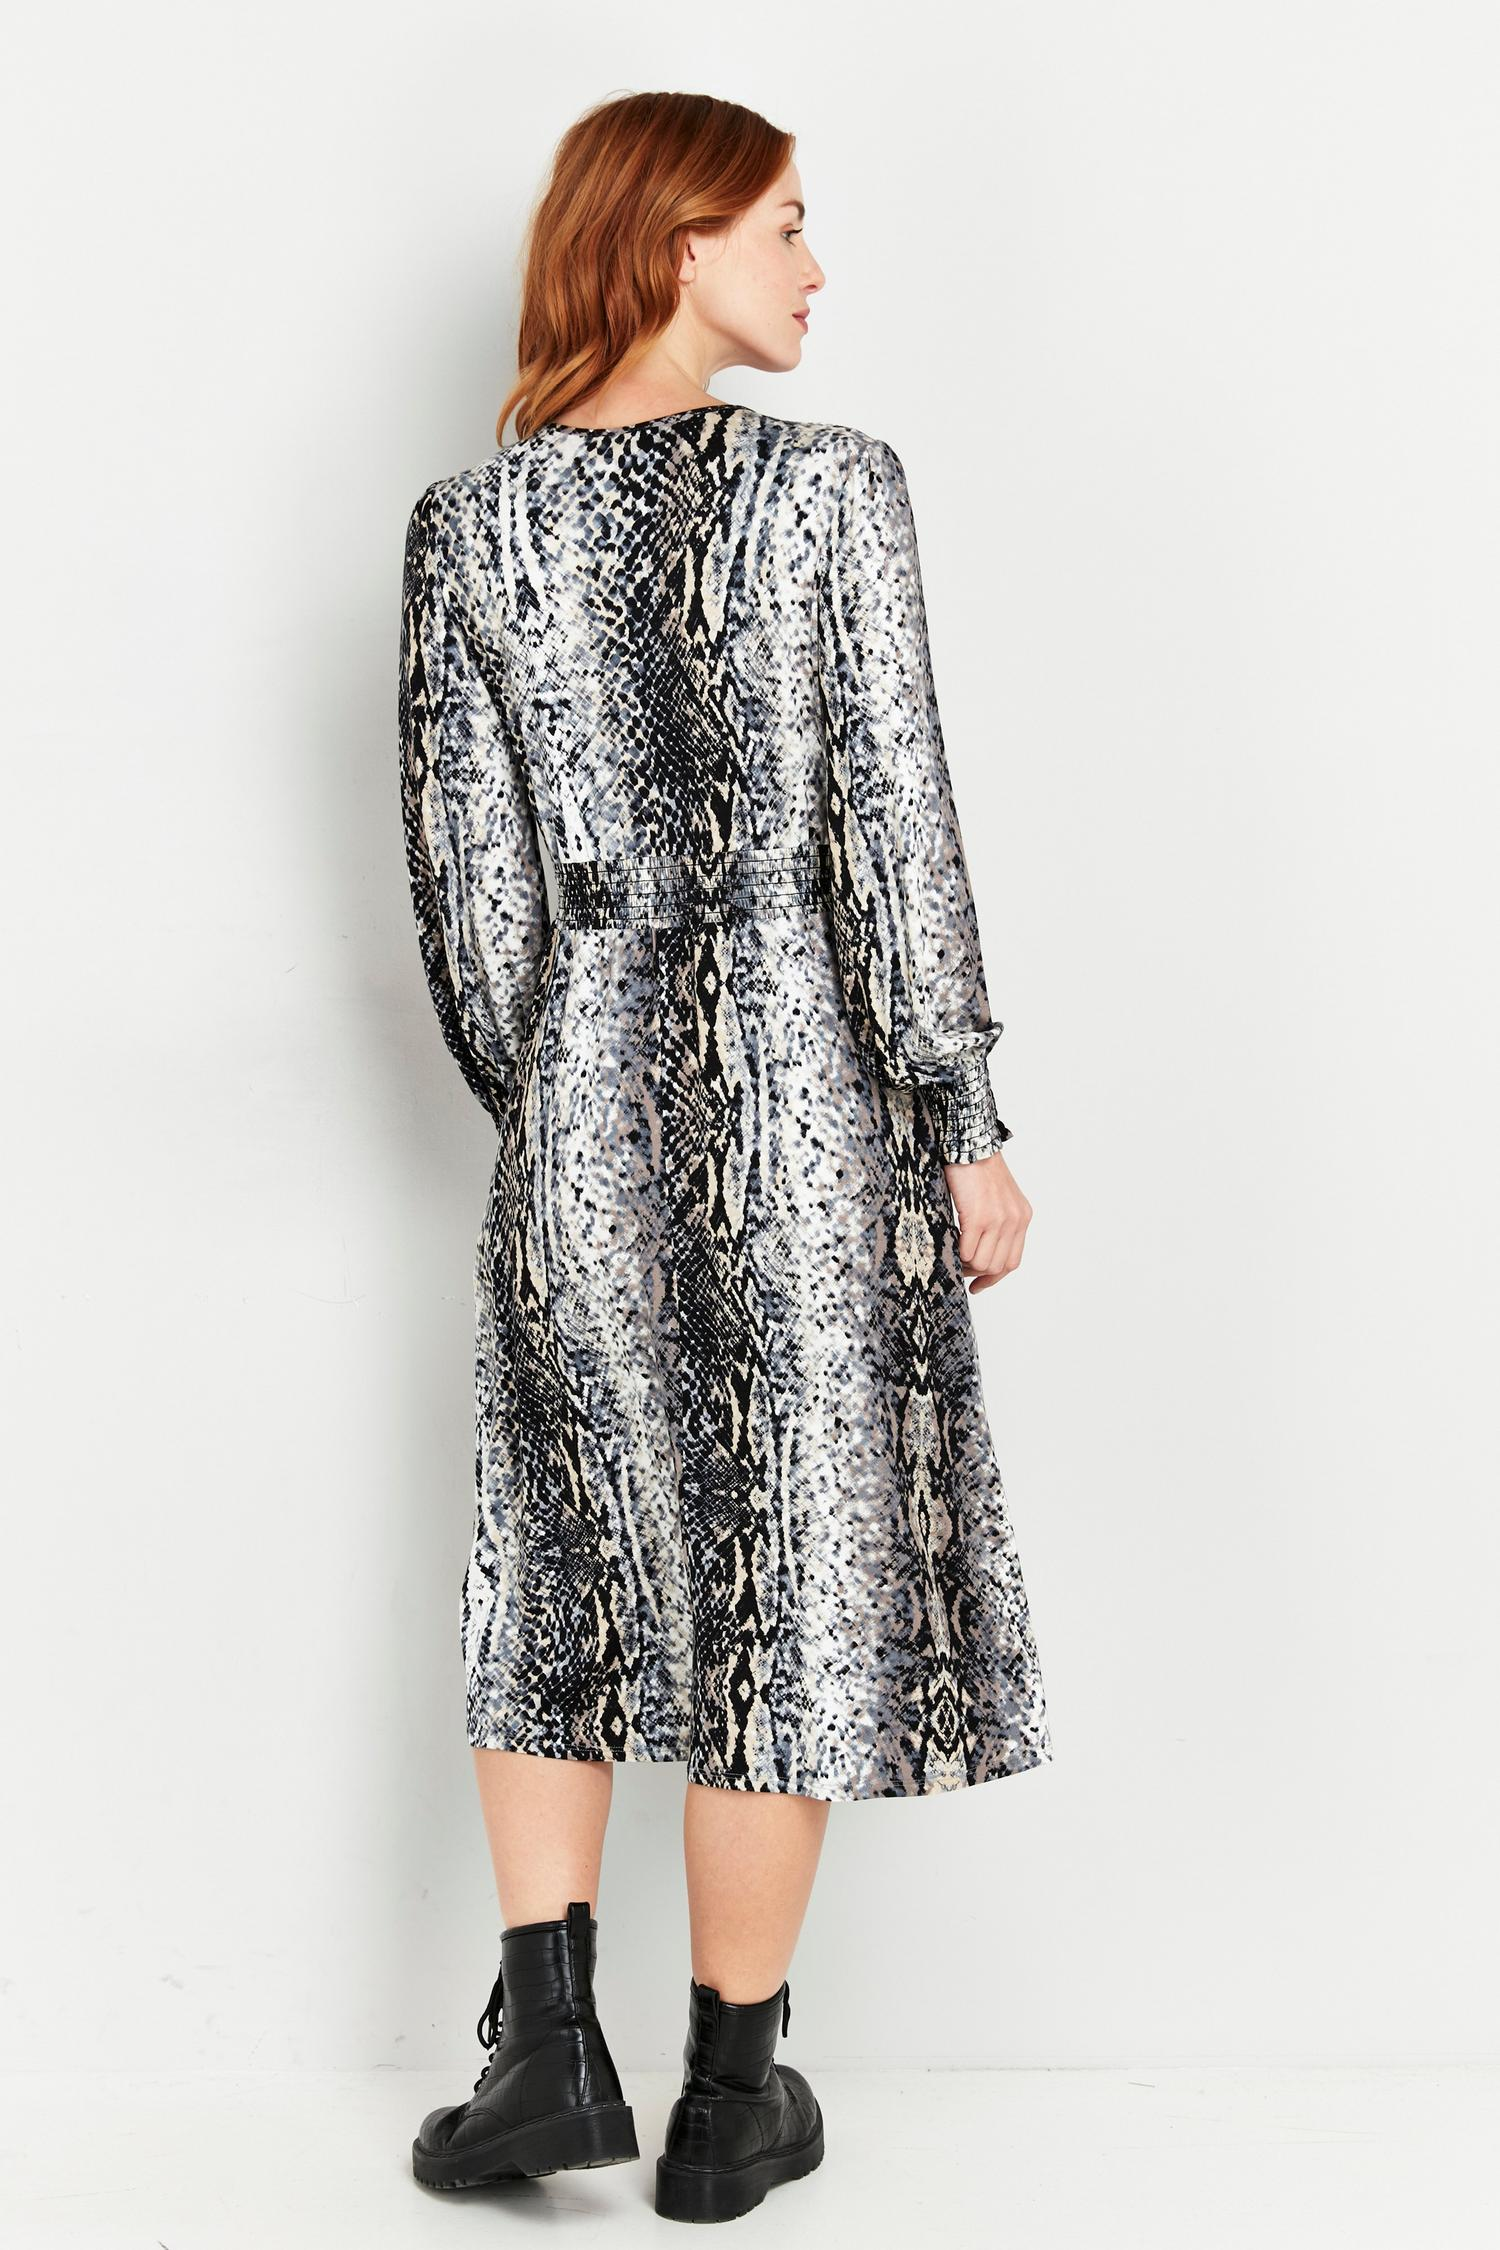 131 Grey Snake Print Wrap Dress image number 2